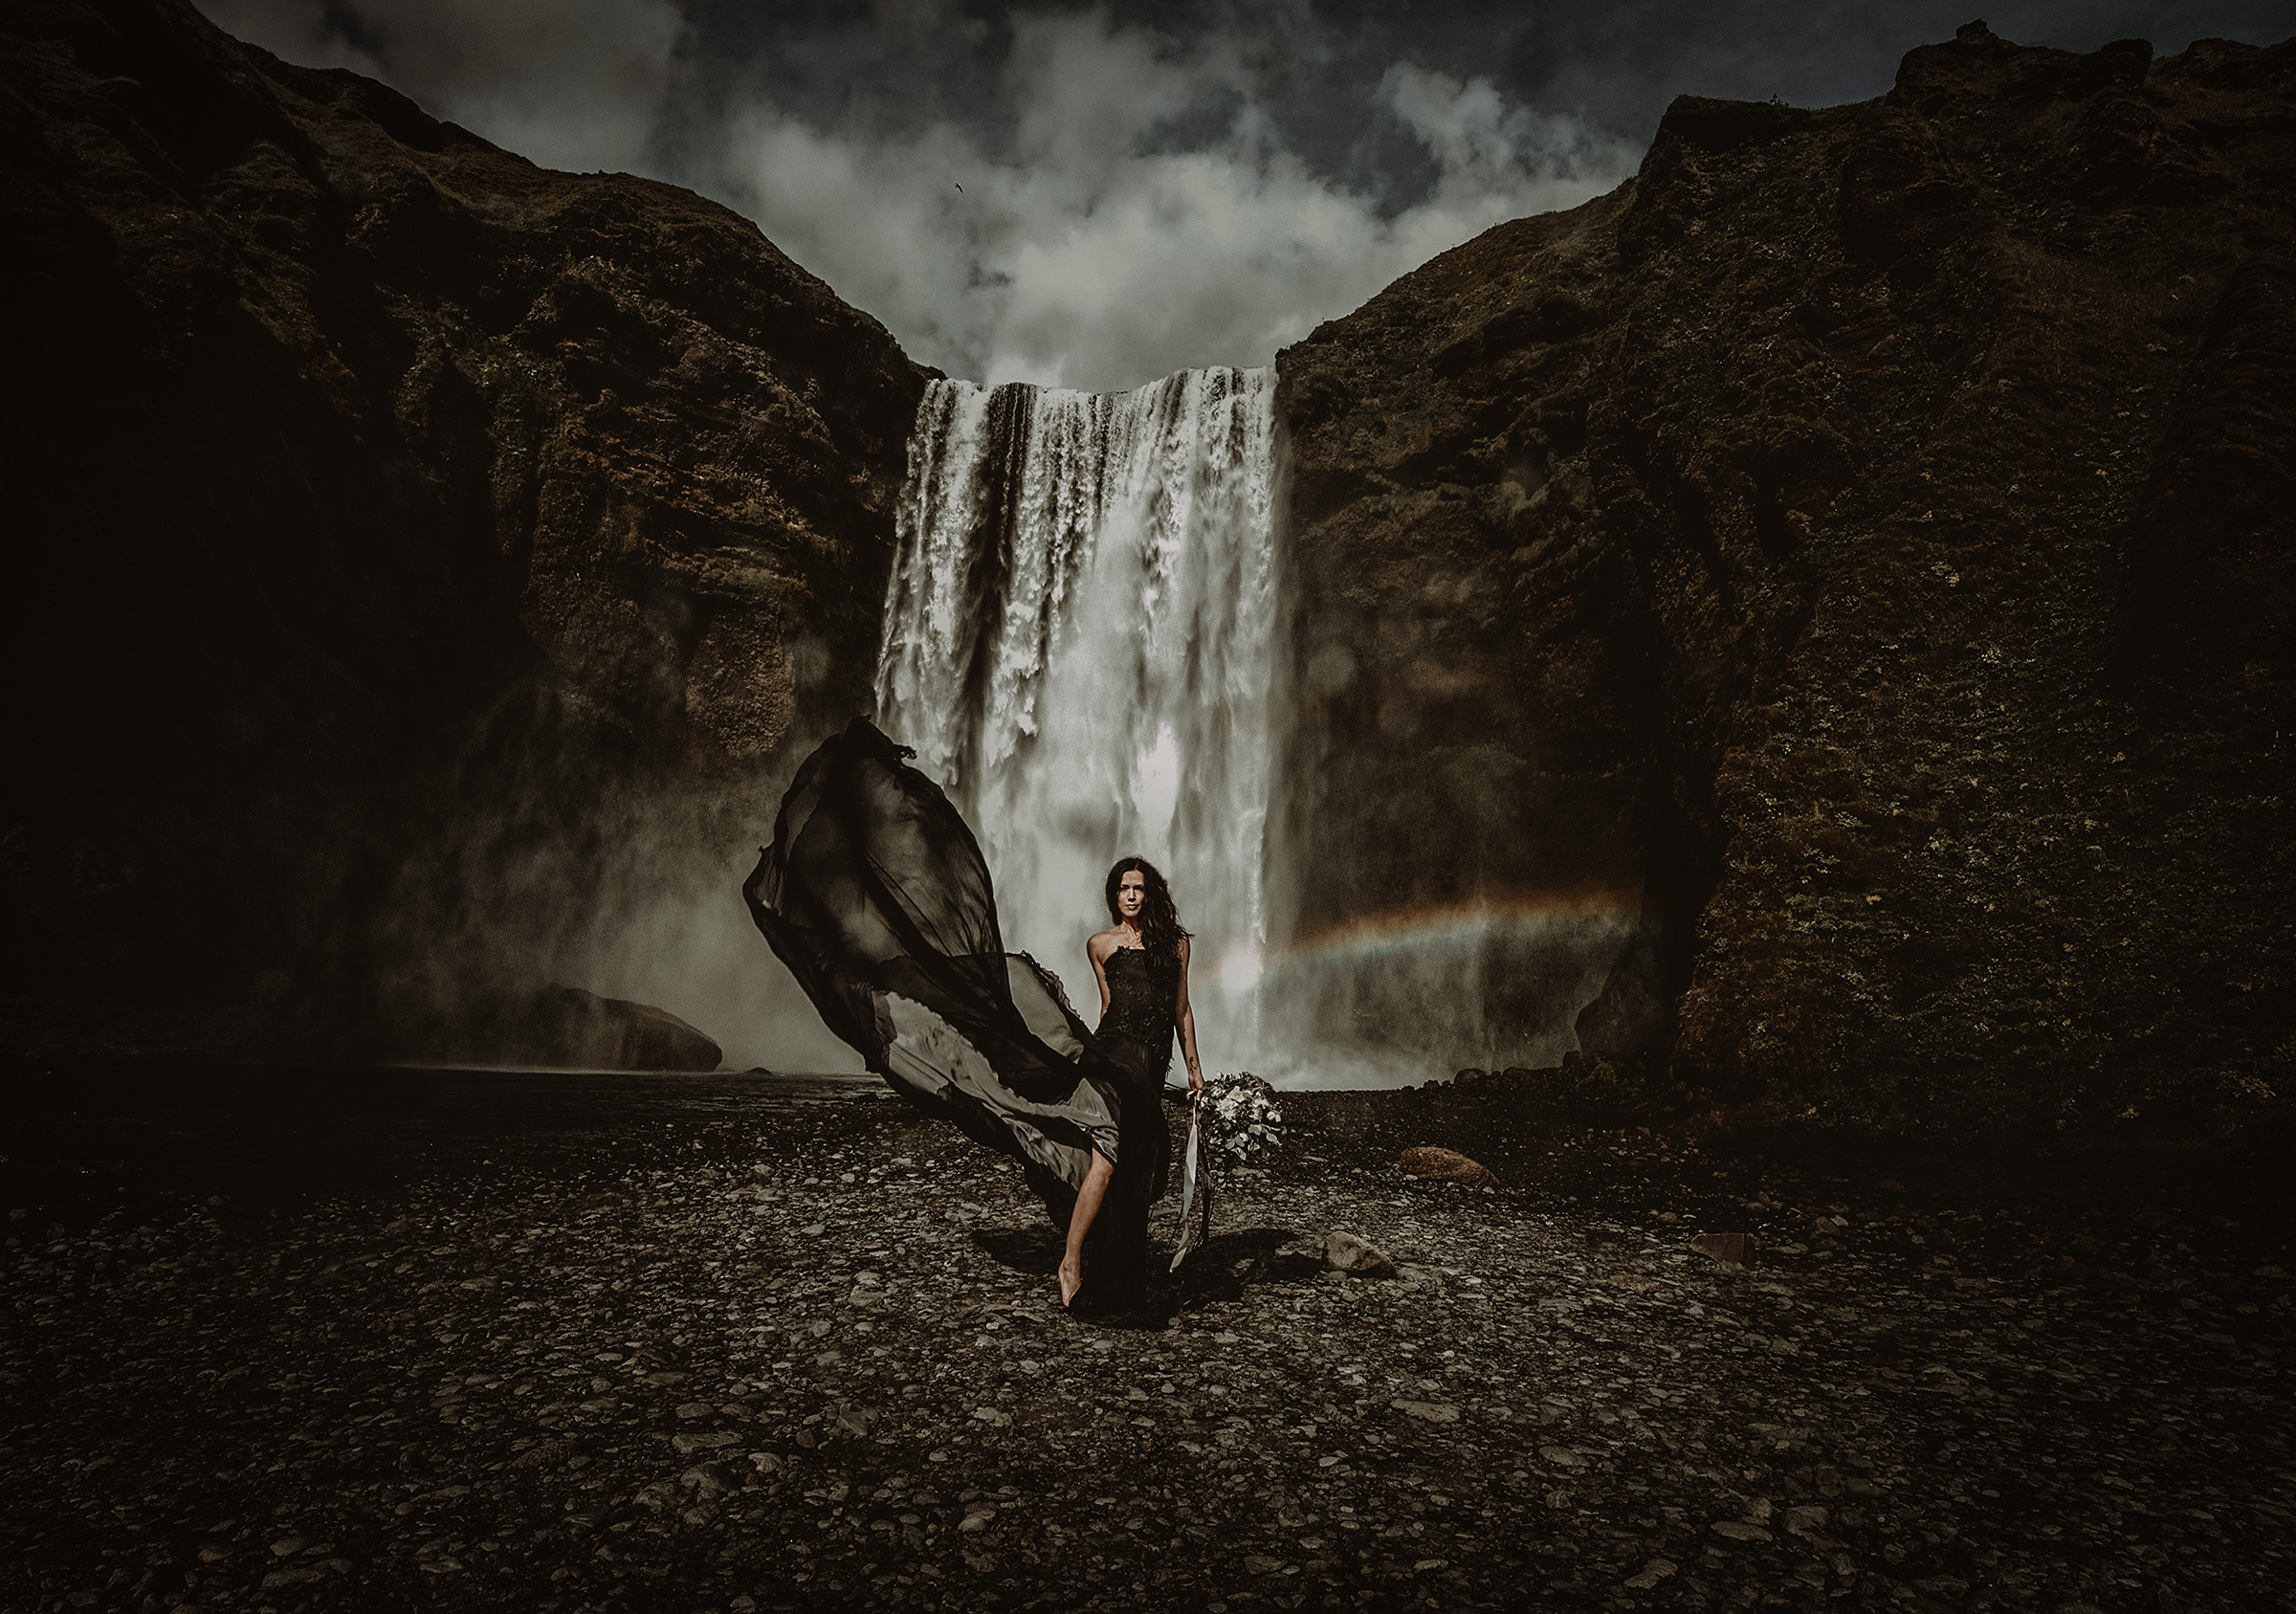 Elegant pose against waterfall with rainbow - photo by Frøydis